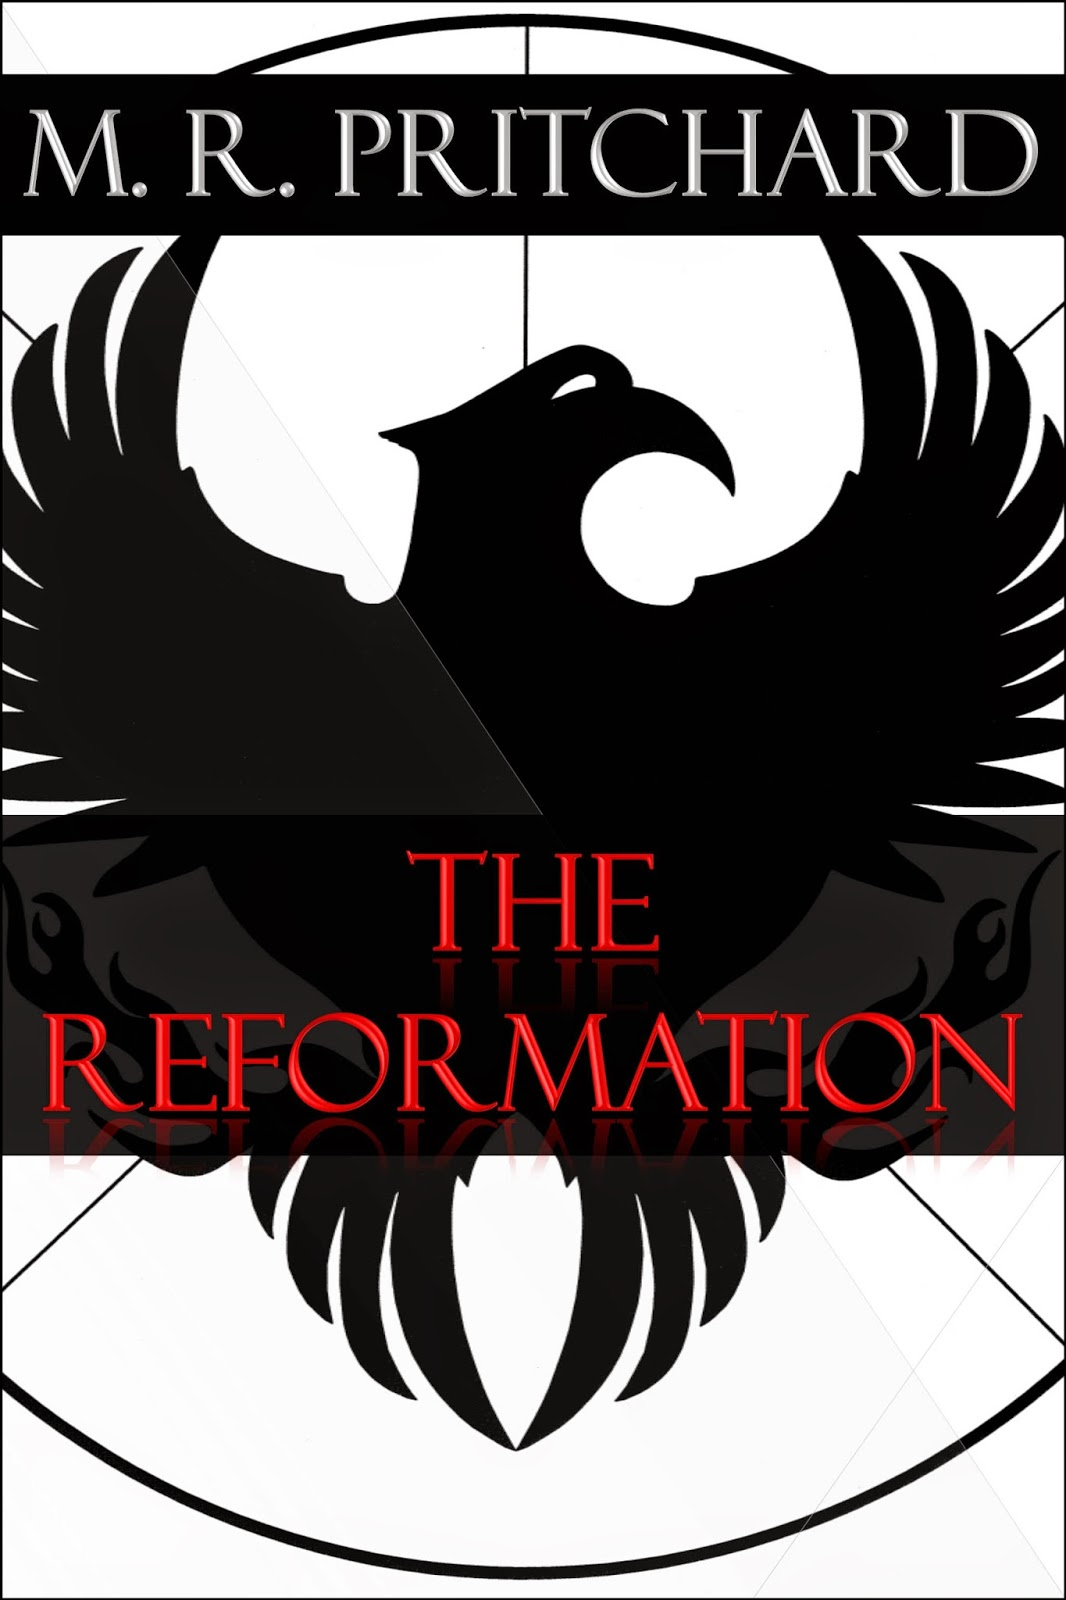 http://www.amazon.com/The-Reformation-Phoenix-Project-ebook/dp/B00D50BCW2/ref=pd_sim_kstore_1?ie=UTF8&refRID=0KCB1WPQ9PDR75MVVA8M